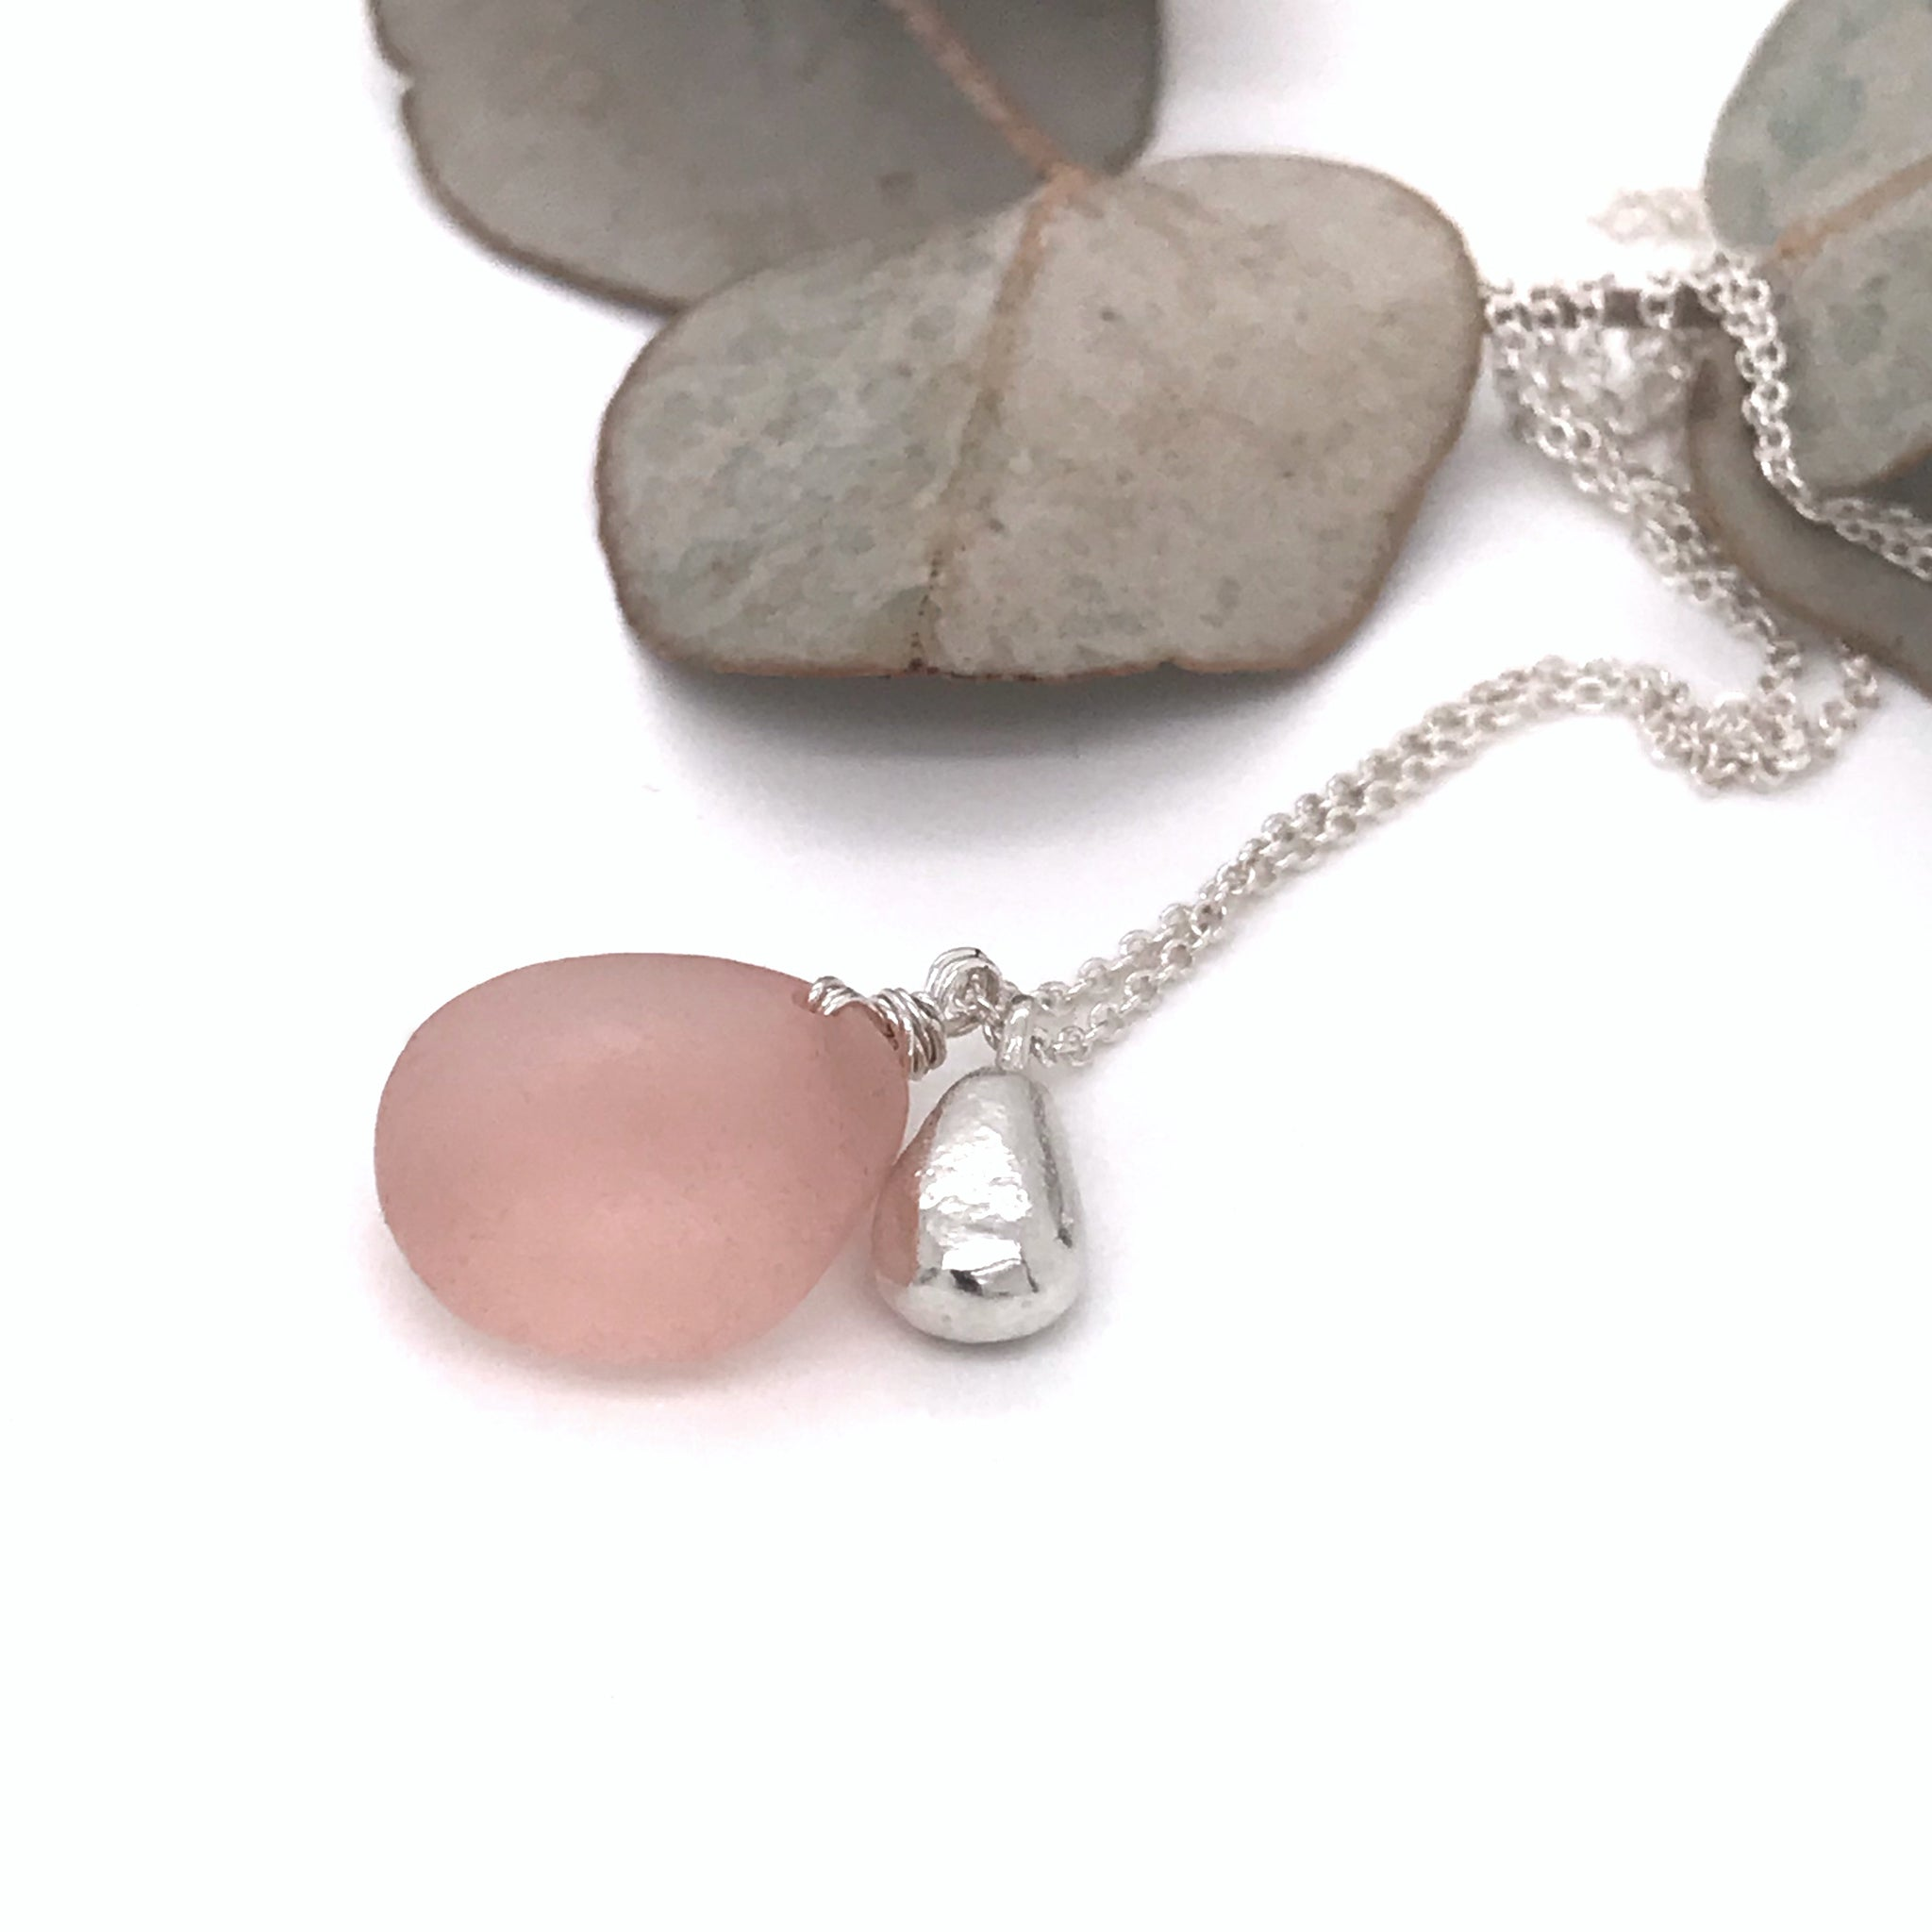 pink-seaglass-necklace-with-silver-teardrop-charm-kriket-broadhurst-jewellery-Sydney